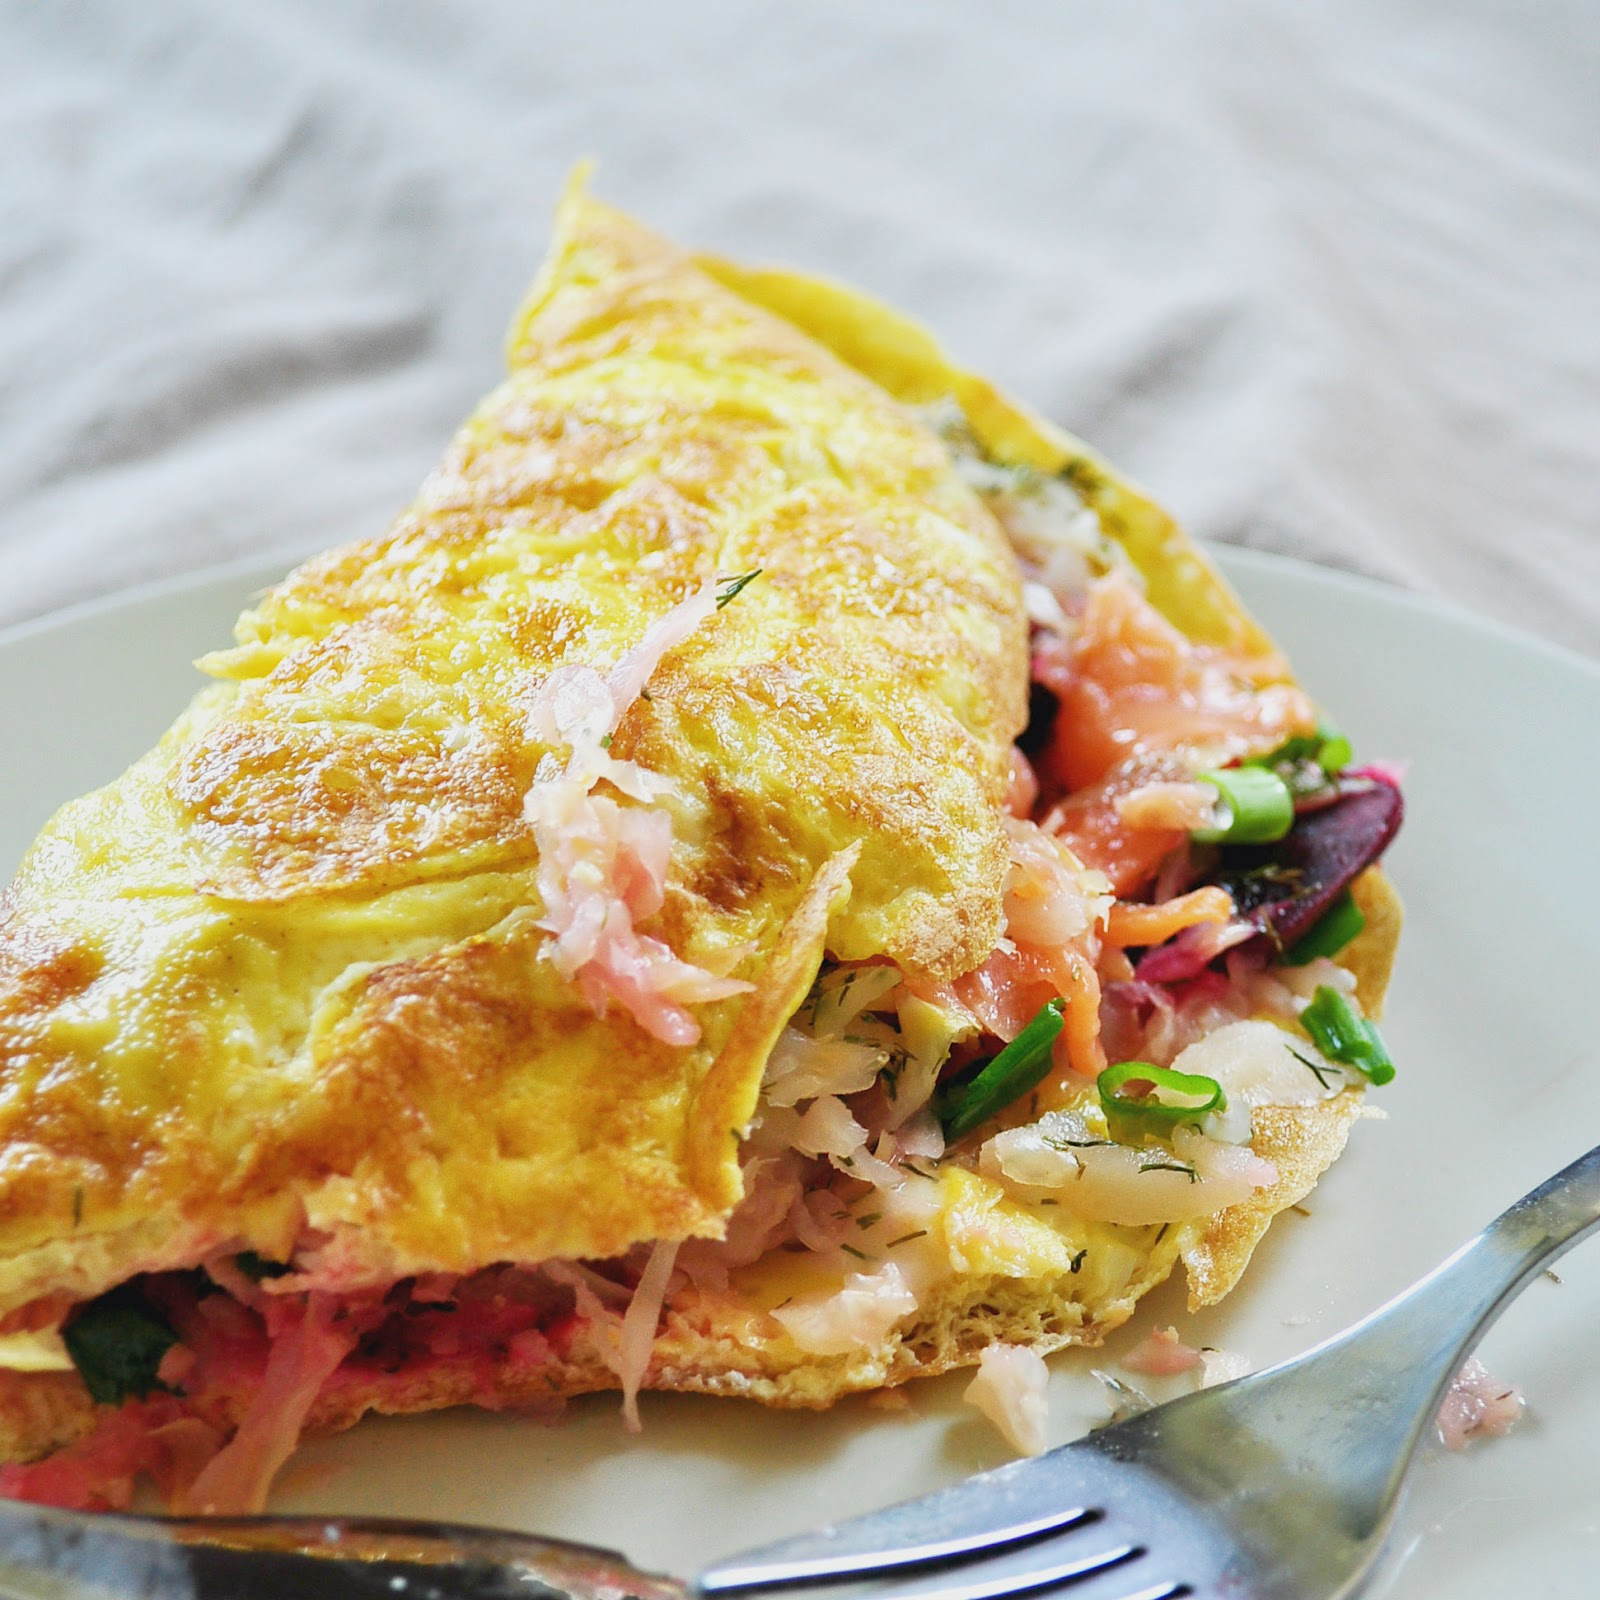 Burpees In The Kitchen Omelette With Smoked Salmon